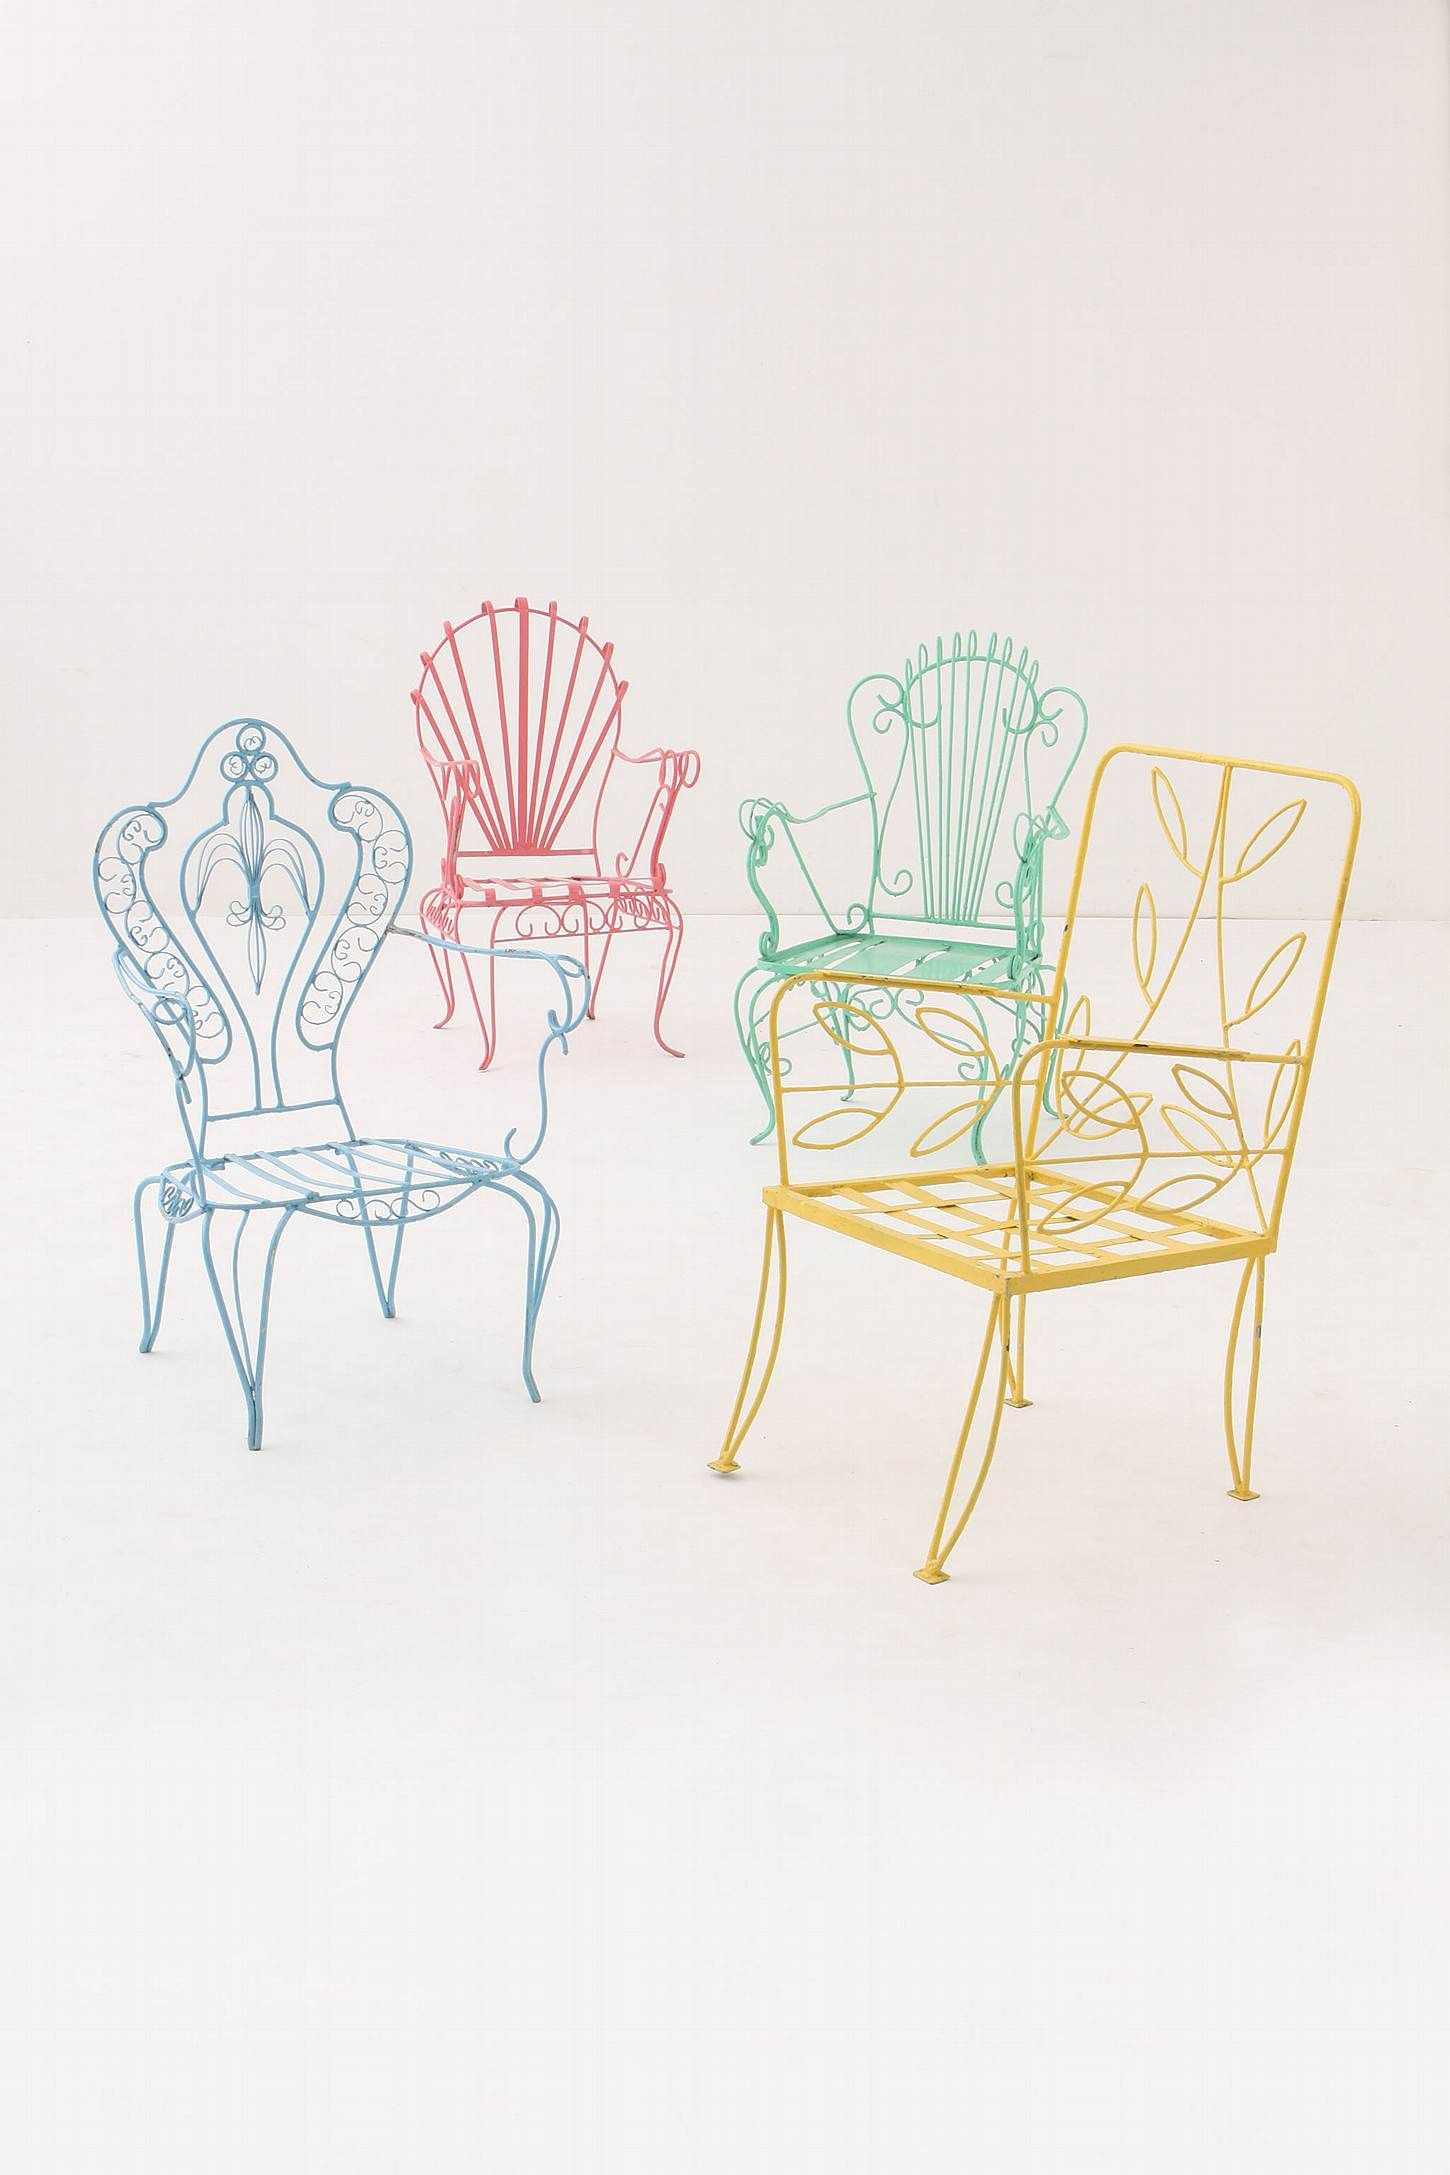 Flores Lawn Chair Pink Leaf Metal Patio Chairs Colorful Chairs Iron Chair